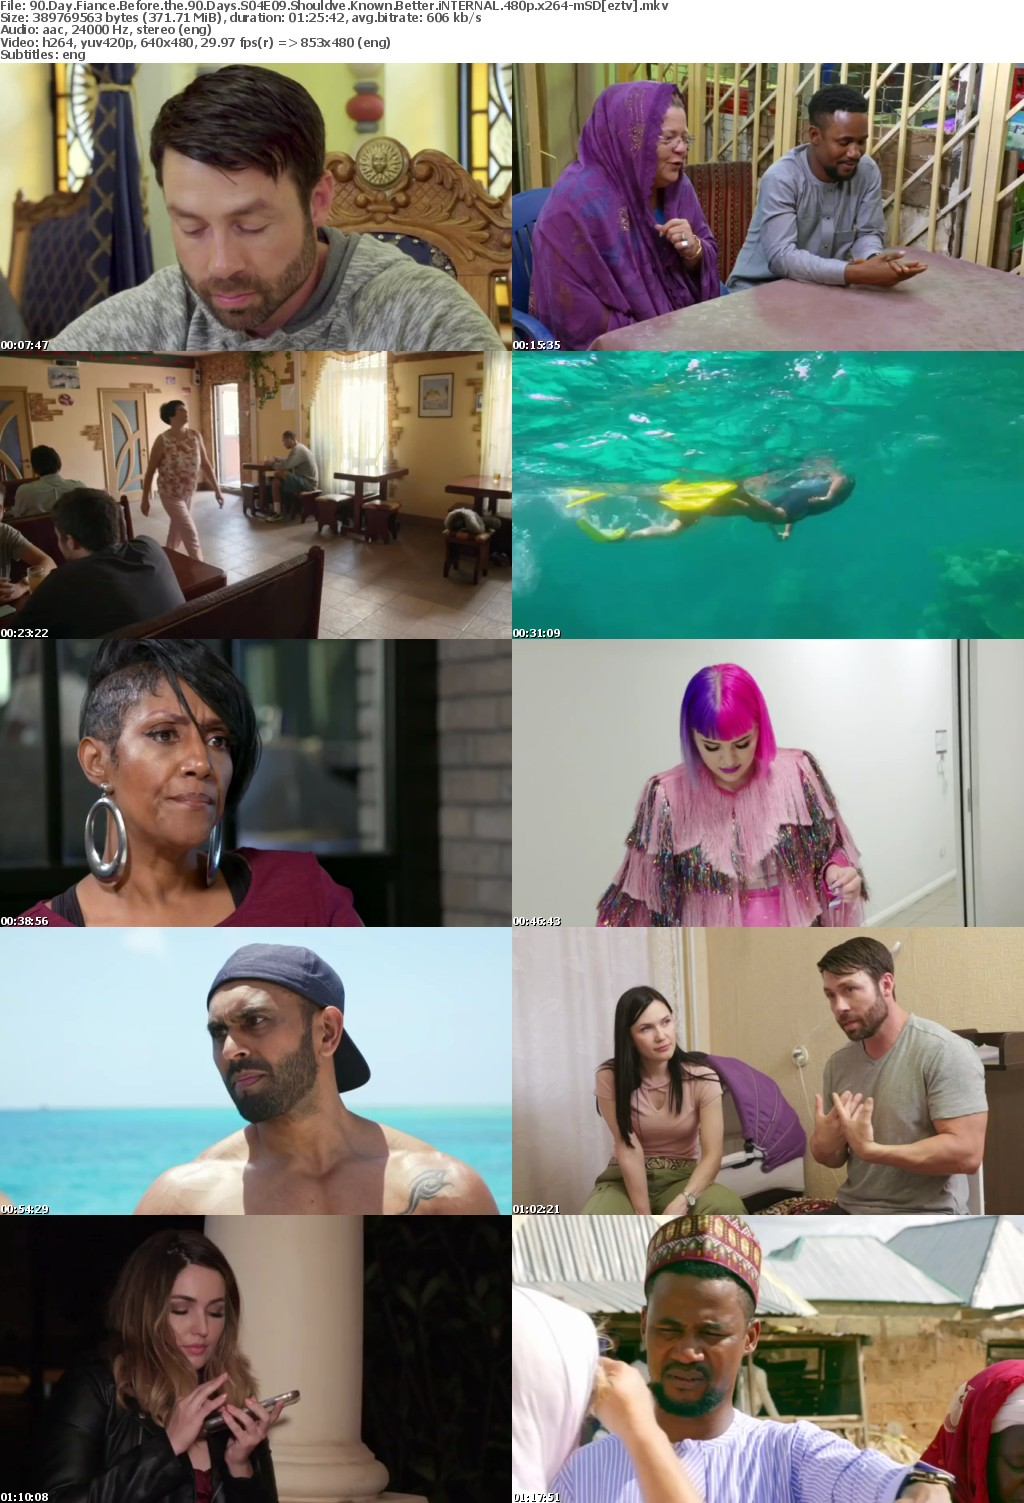 90 Day Fiance Before the 90 Days S04E09 Shouldve Known Better iNTERNAL 480p x264-mSD